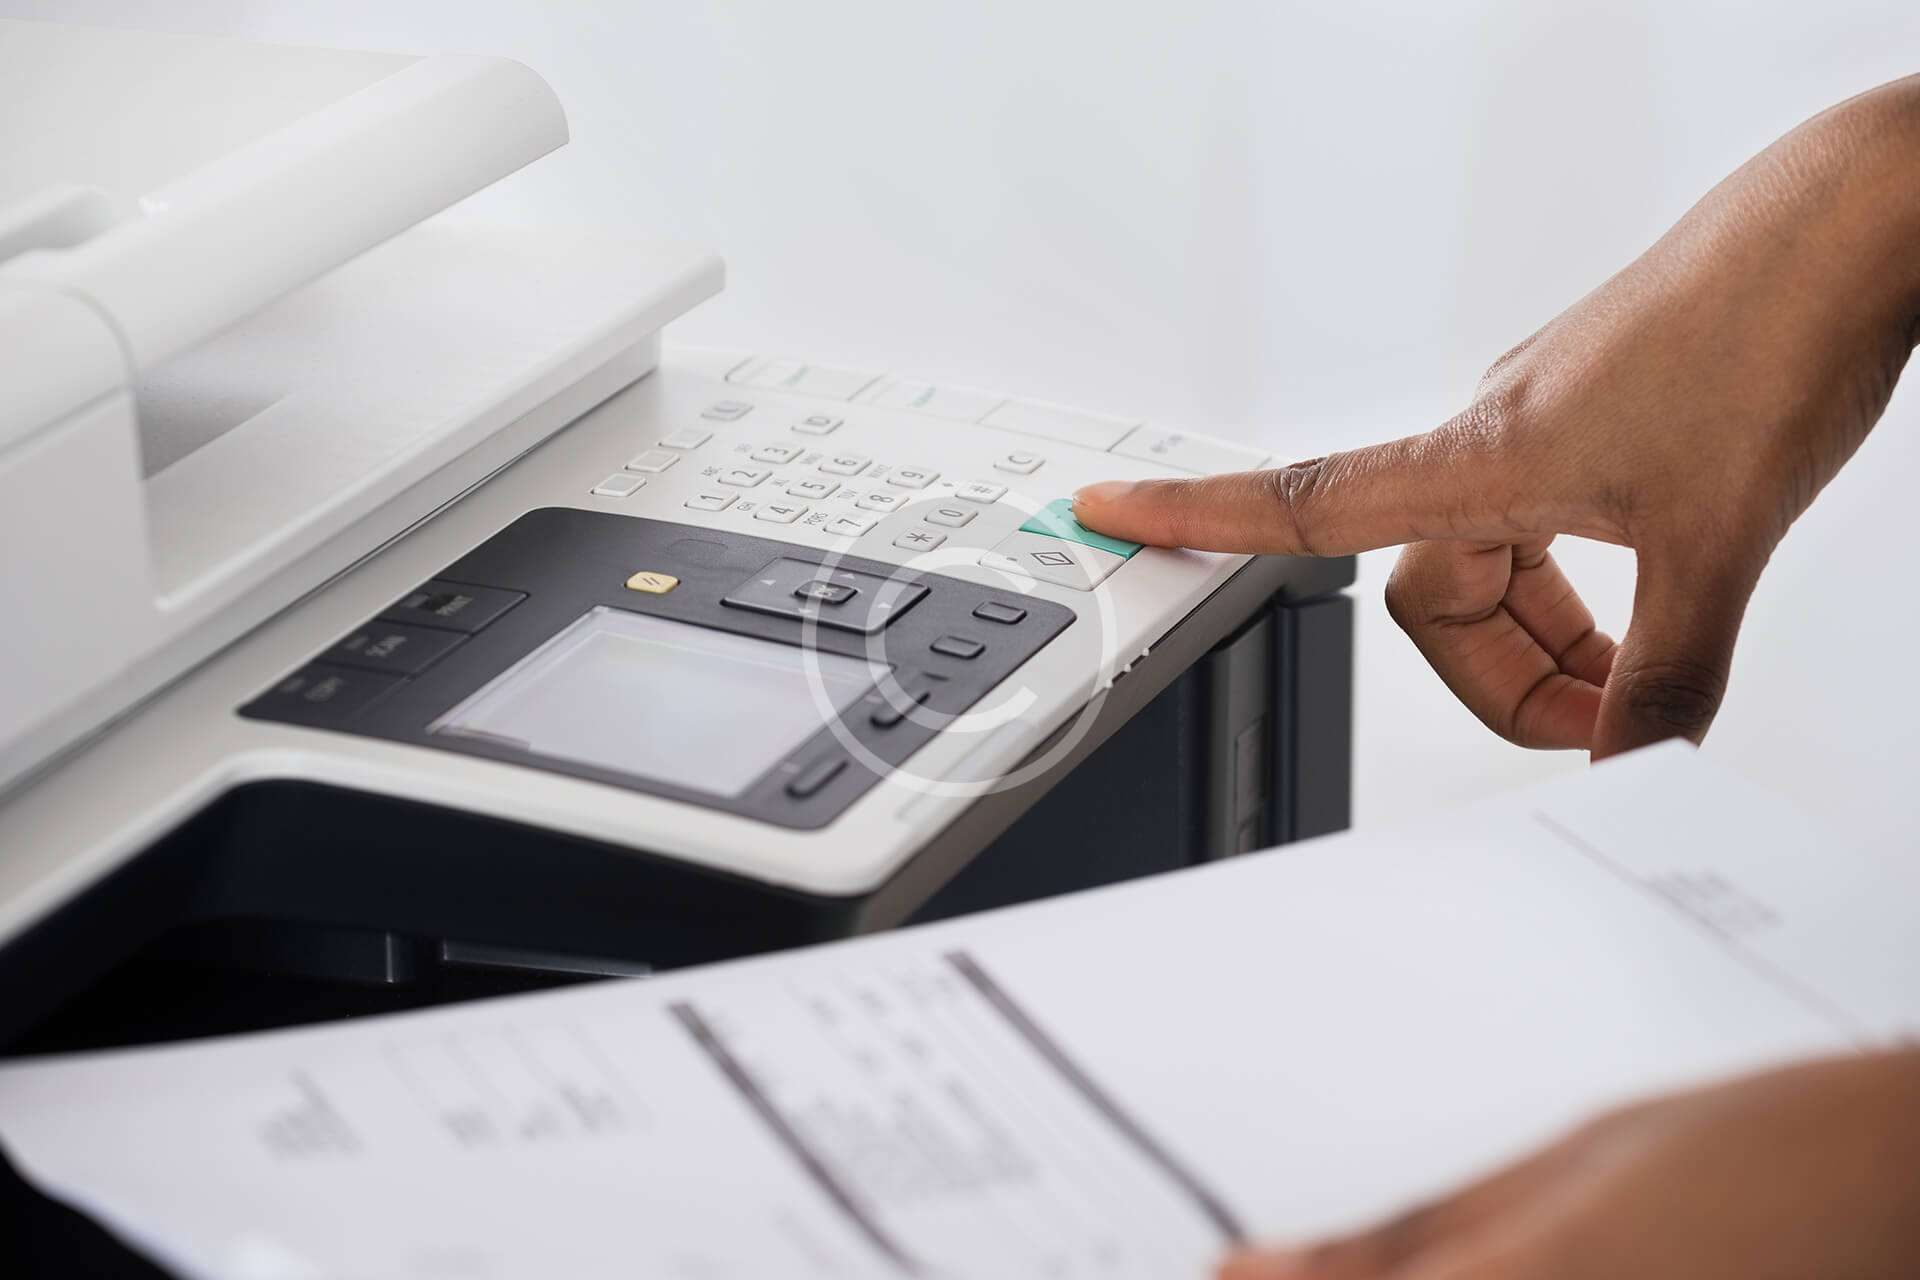 Scan, Print, Photocopy